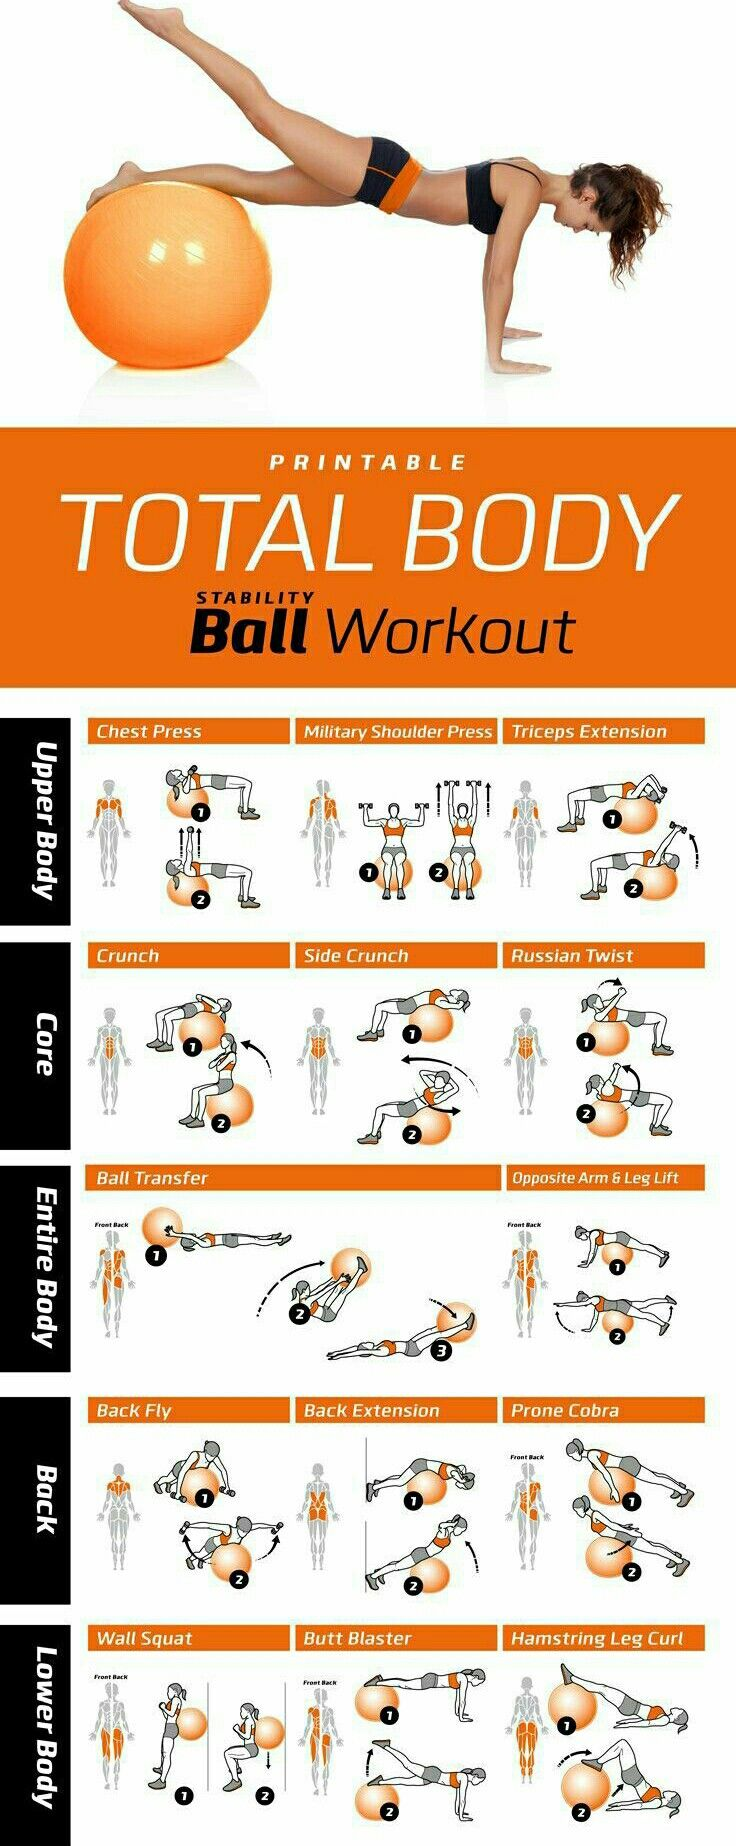 TOTAL-Body Workout using a STABILITY Exercise BALL